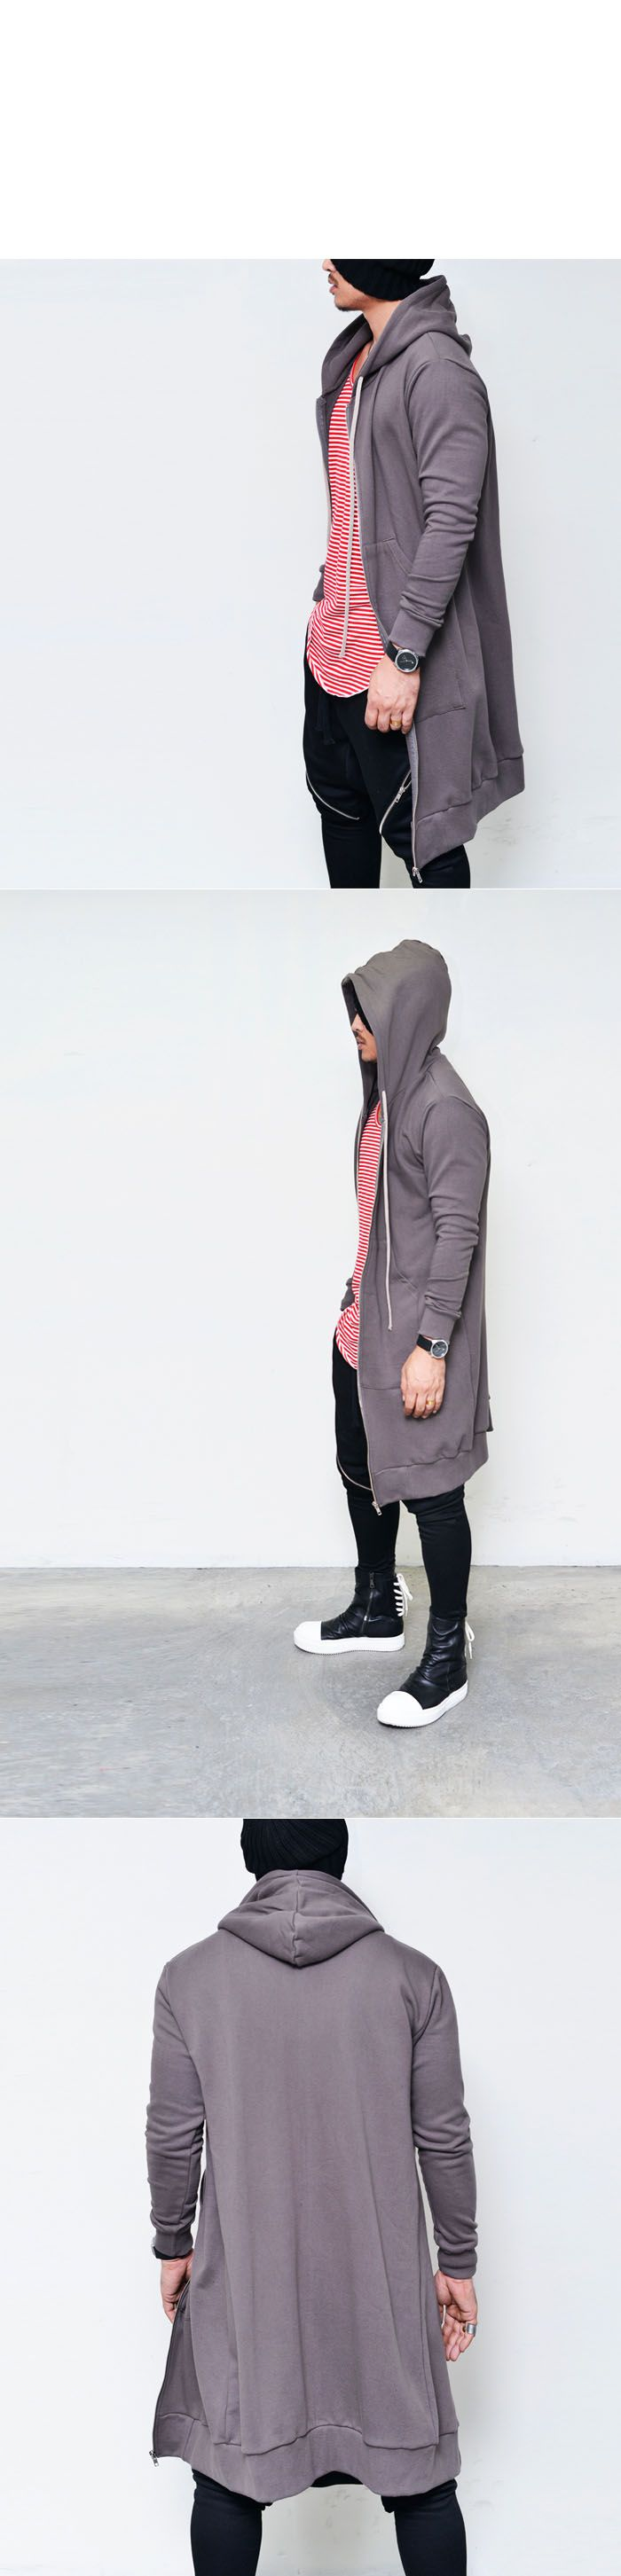 Tops :: Hoodies :: Extended Long Zip Up Hood Jacket-Hoodie 88 - Mens Fashion Clothing For An Attractive Guy Look